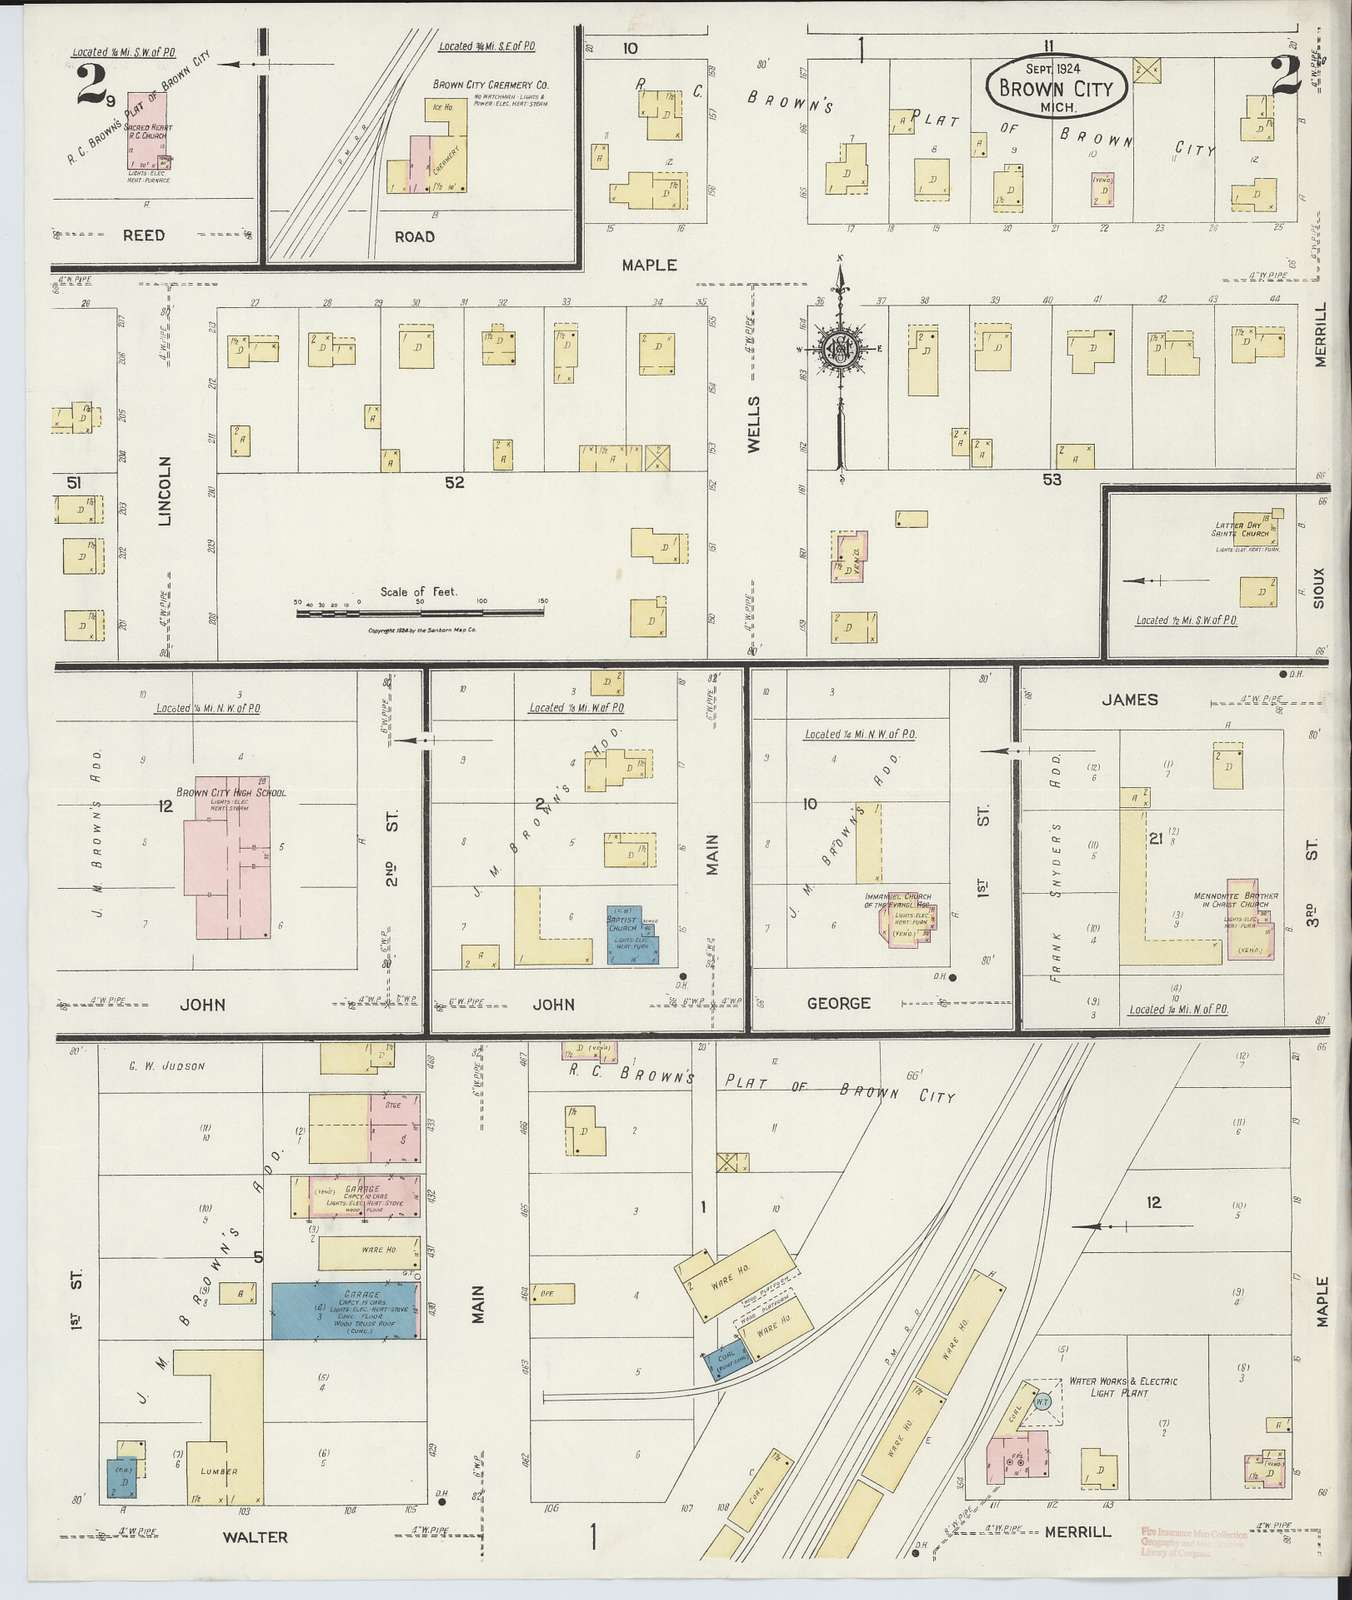 Sanborn Fire Insurance Map from Brown City, Sanilac County, Michigan.